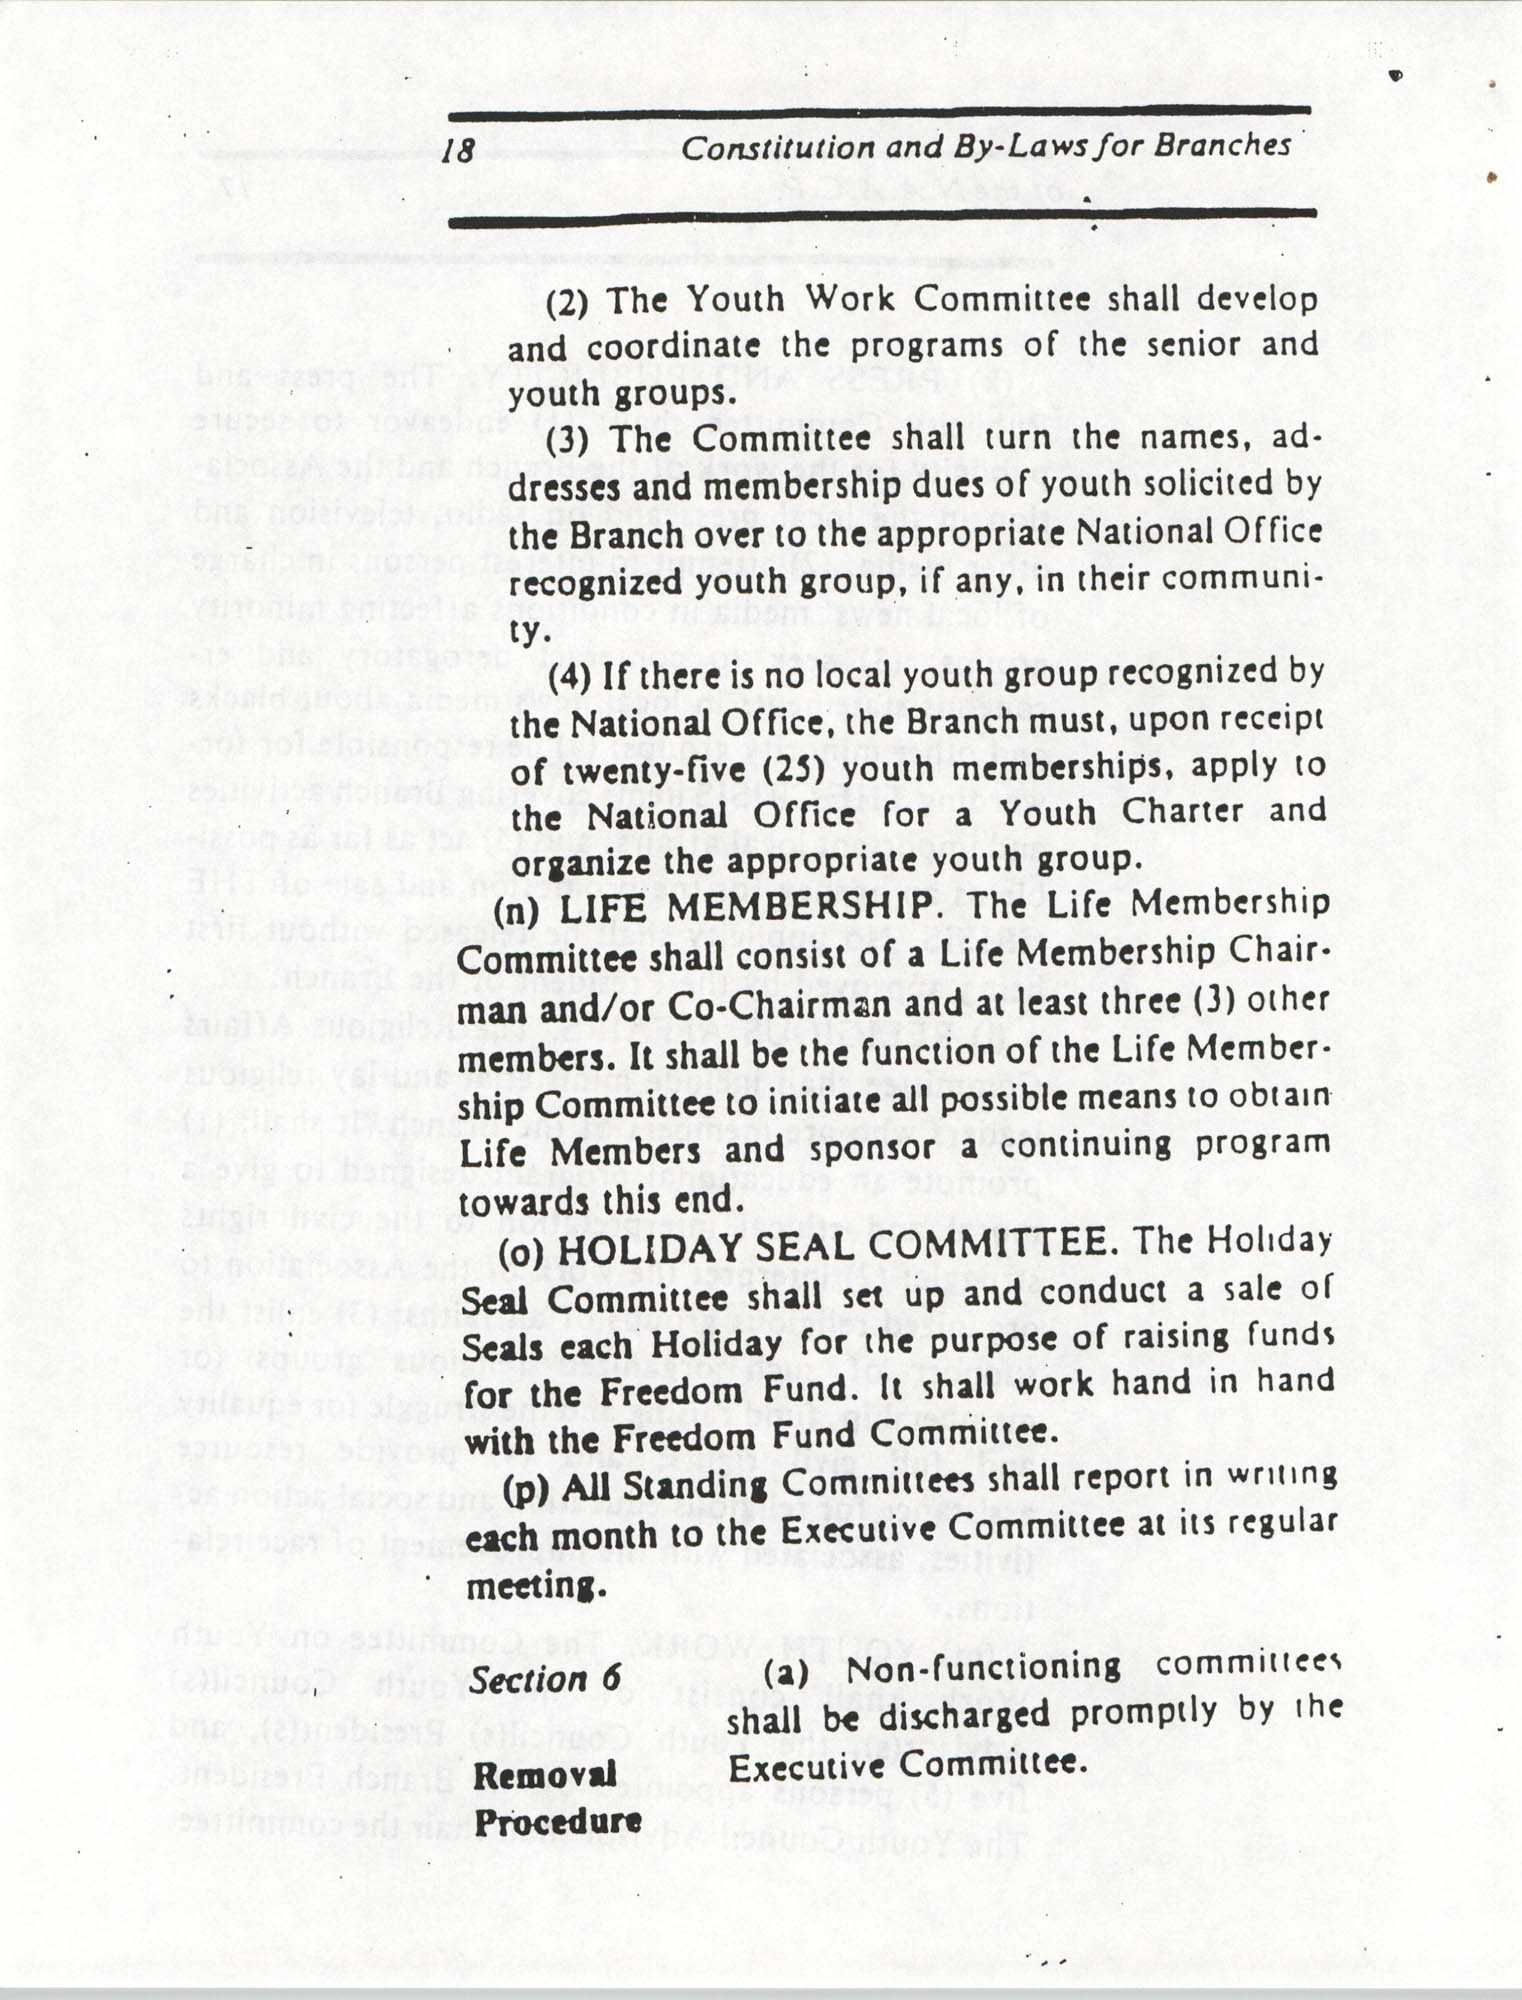 Constitution and By-Laws for Branches of the NAACP, March 1992, Page 18